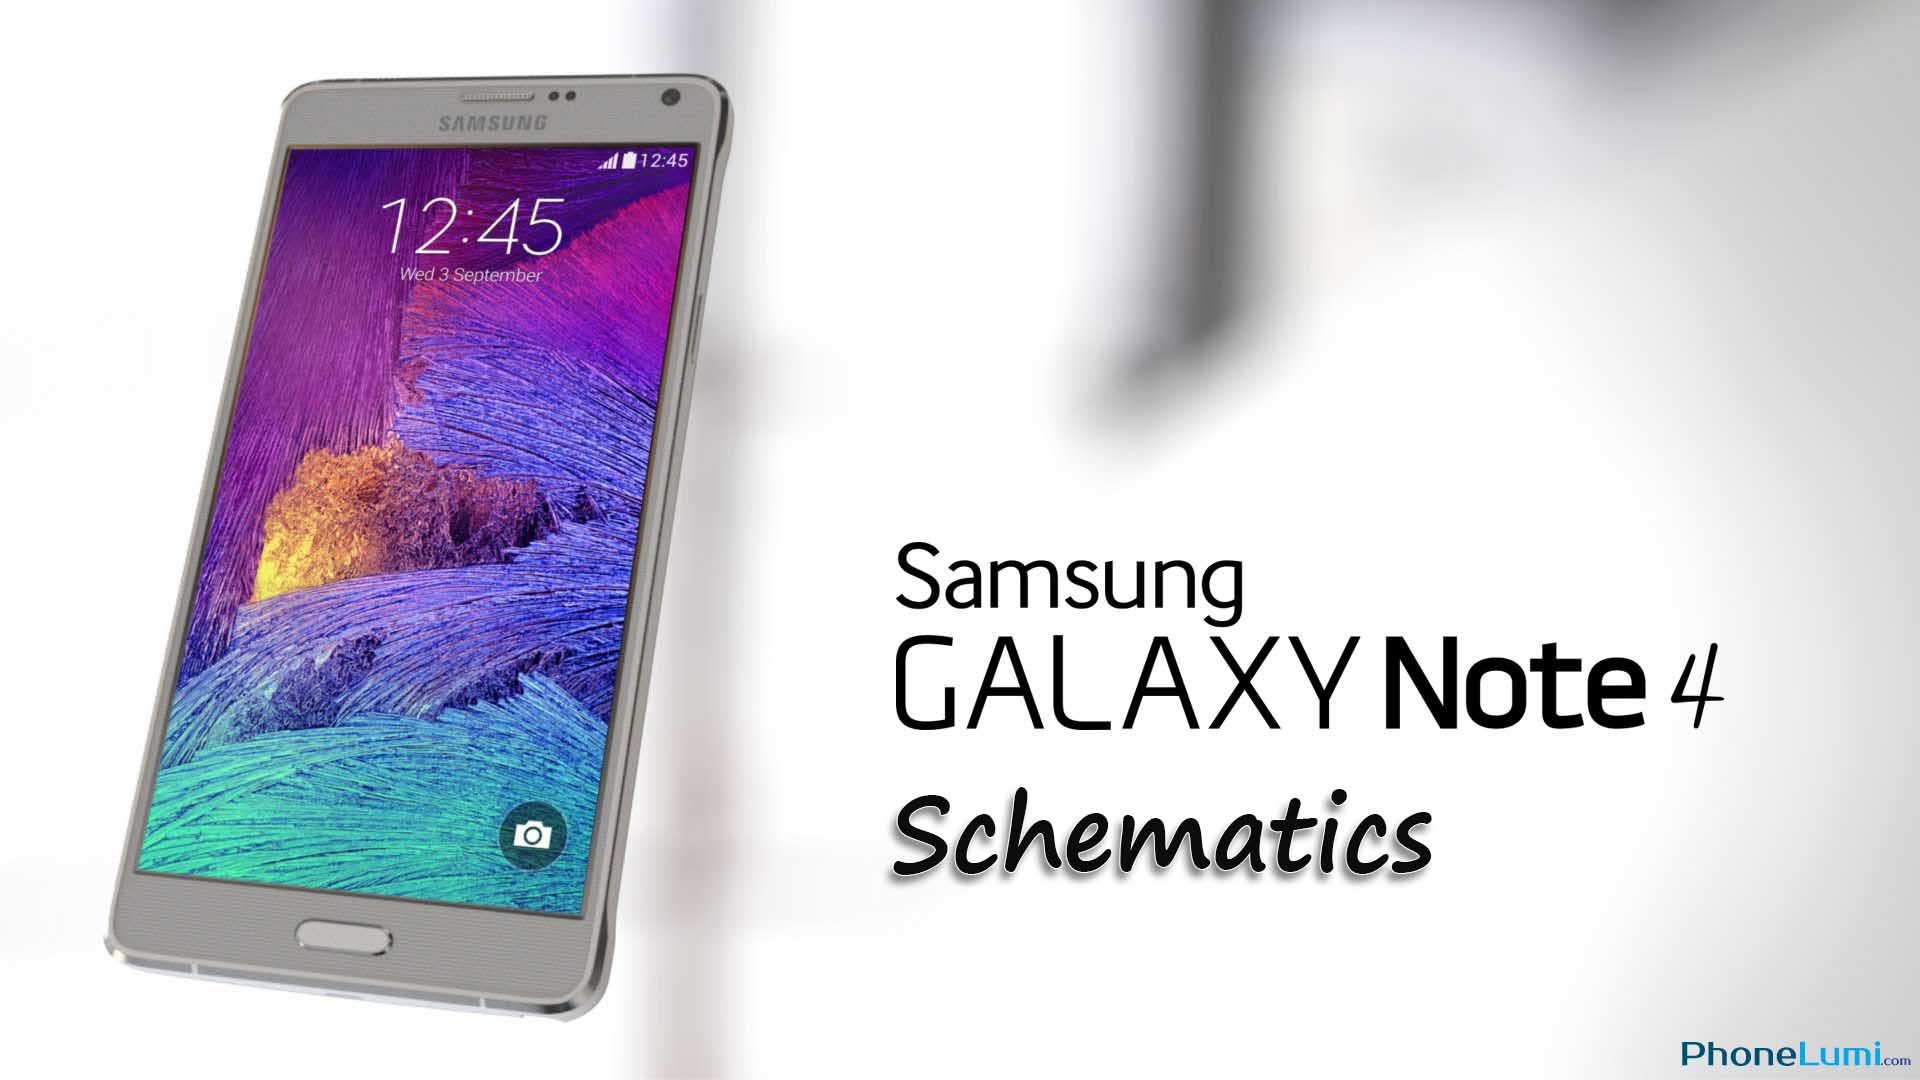 Samsung Galaxy Note 4 Sm